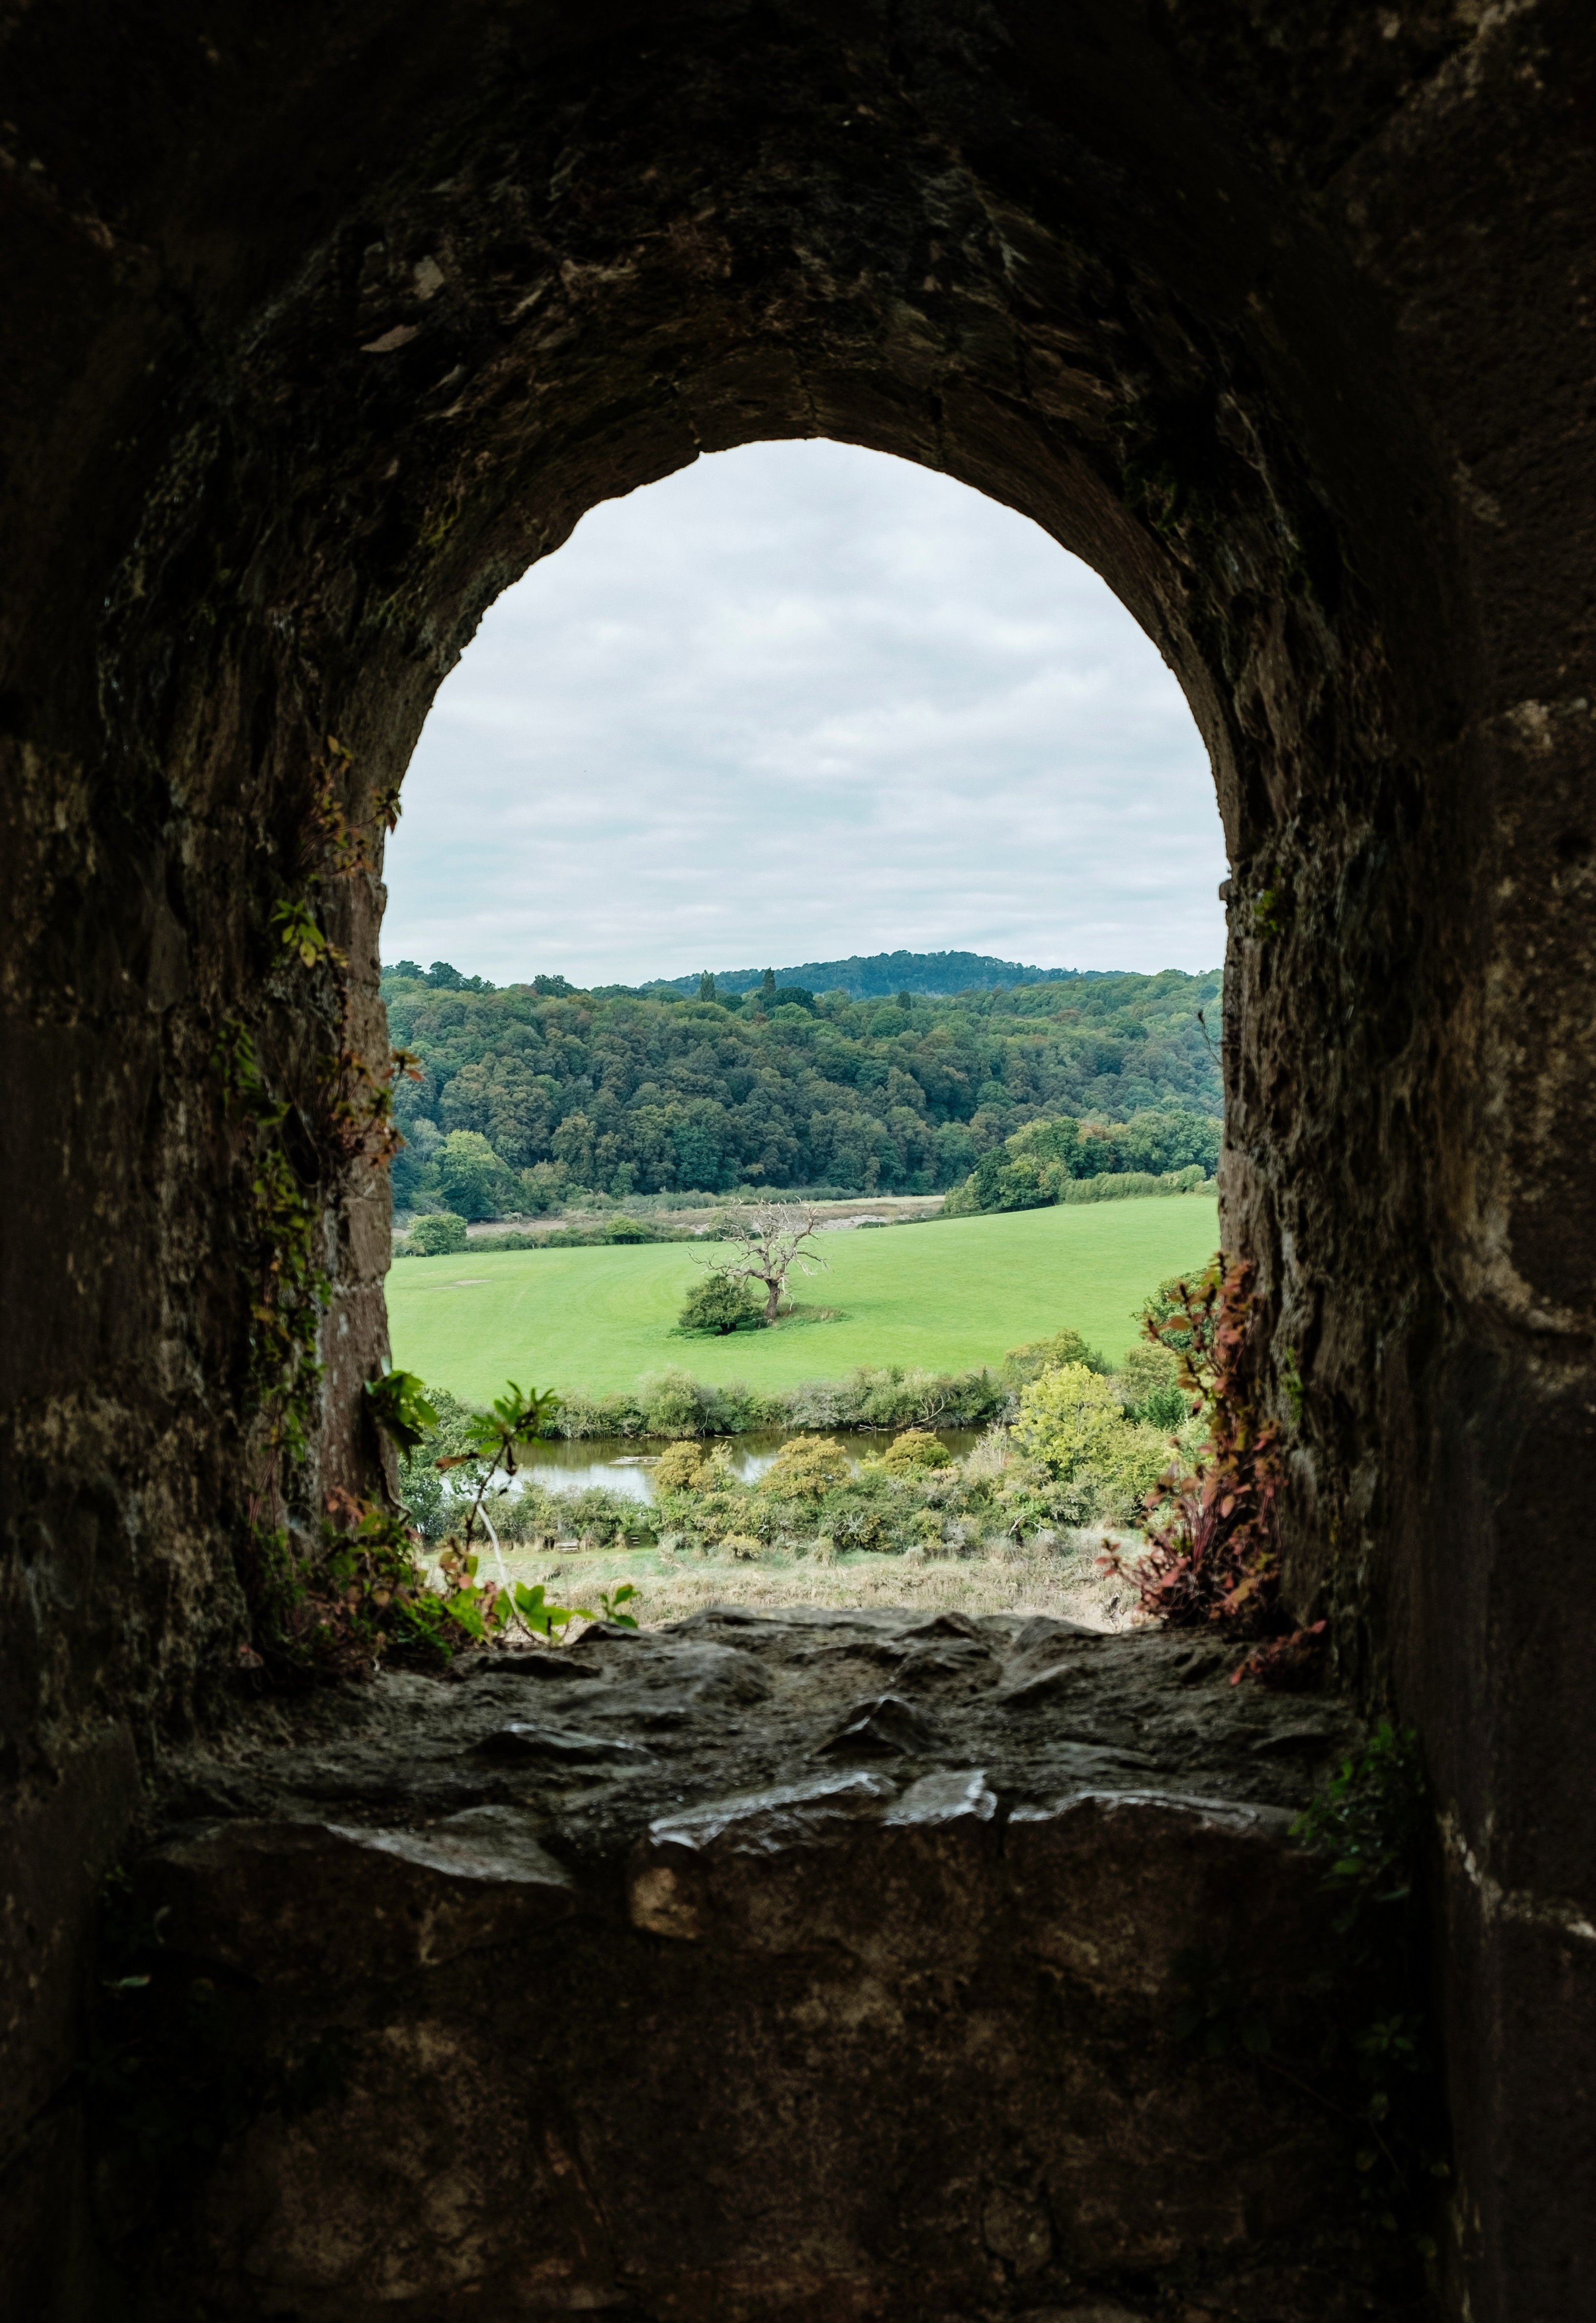 89531 download wallpaper Nature, Window, View, Wall, Stone, Landscape screensavers and pictures for free